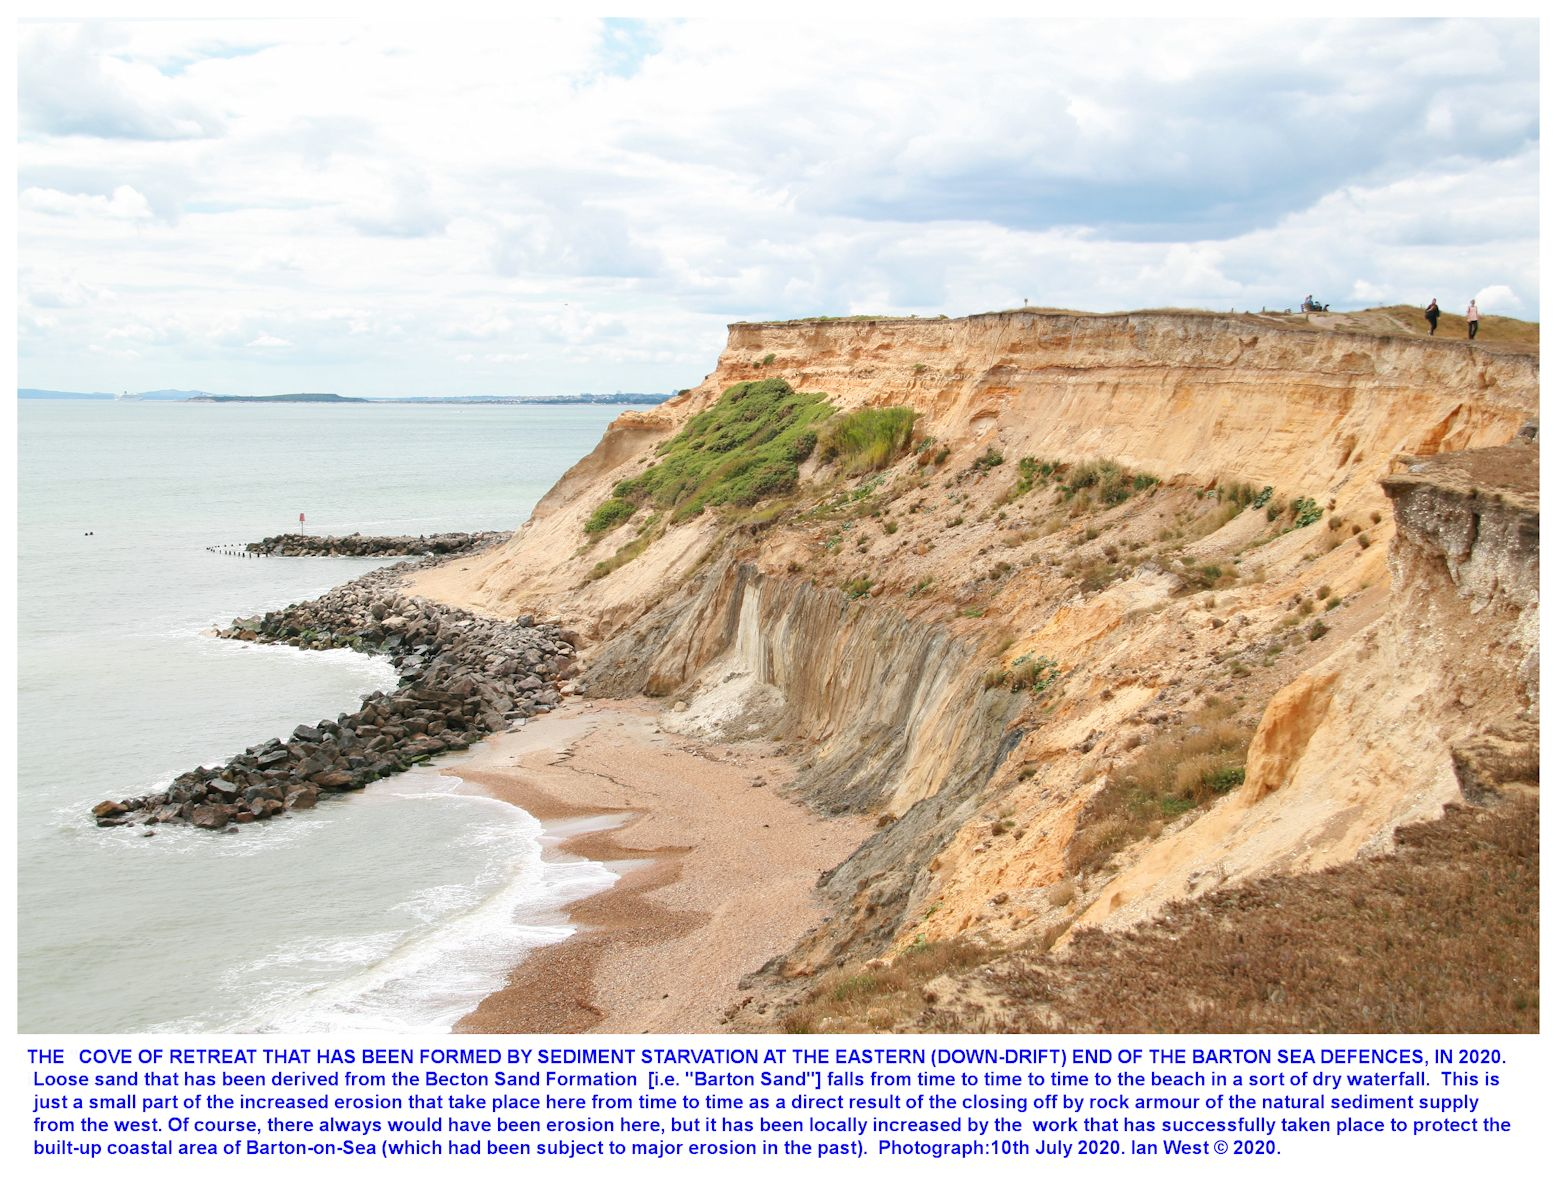 A small sand fall taking place in the Becton Bunny embayment that has formed at the eastern end of the Barton-on-Sea coastal defences, as seen on the 10th July 2020